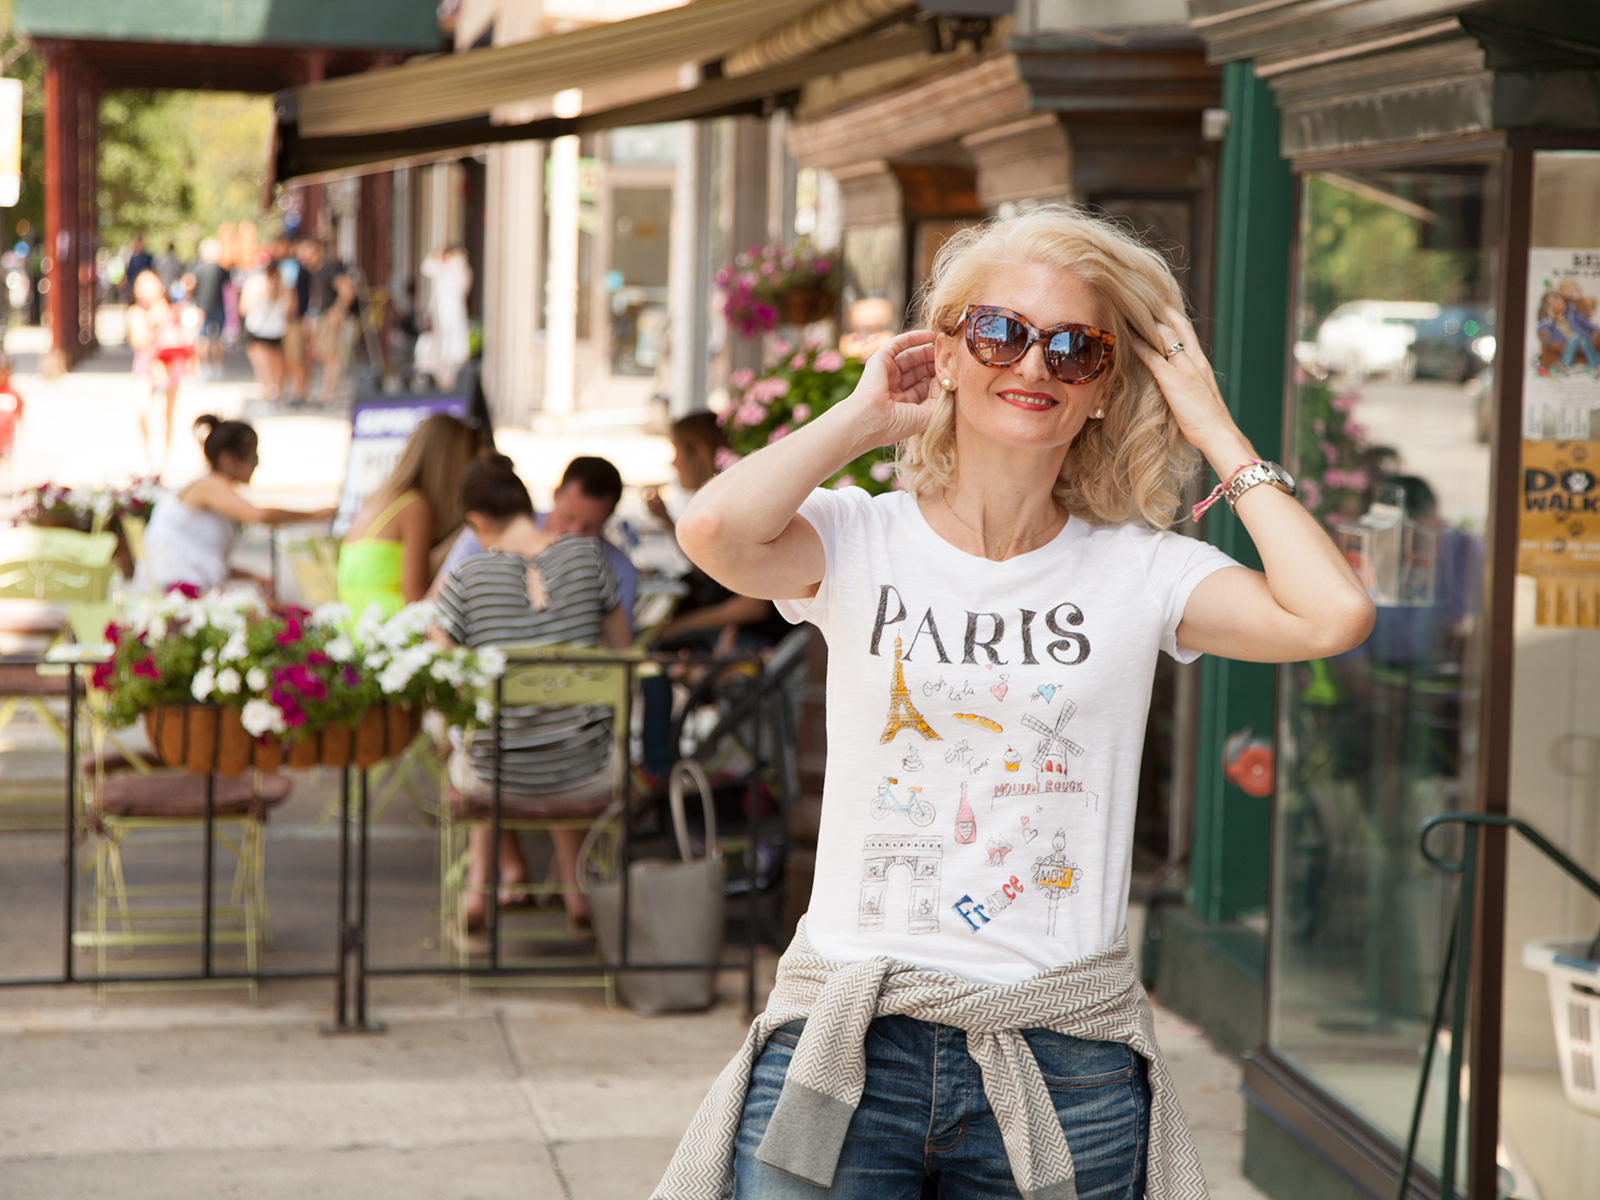 DIY Paris Doodle T-Shirt Photo 3 by Trinkets in Bloom